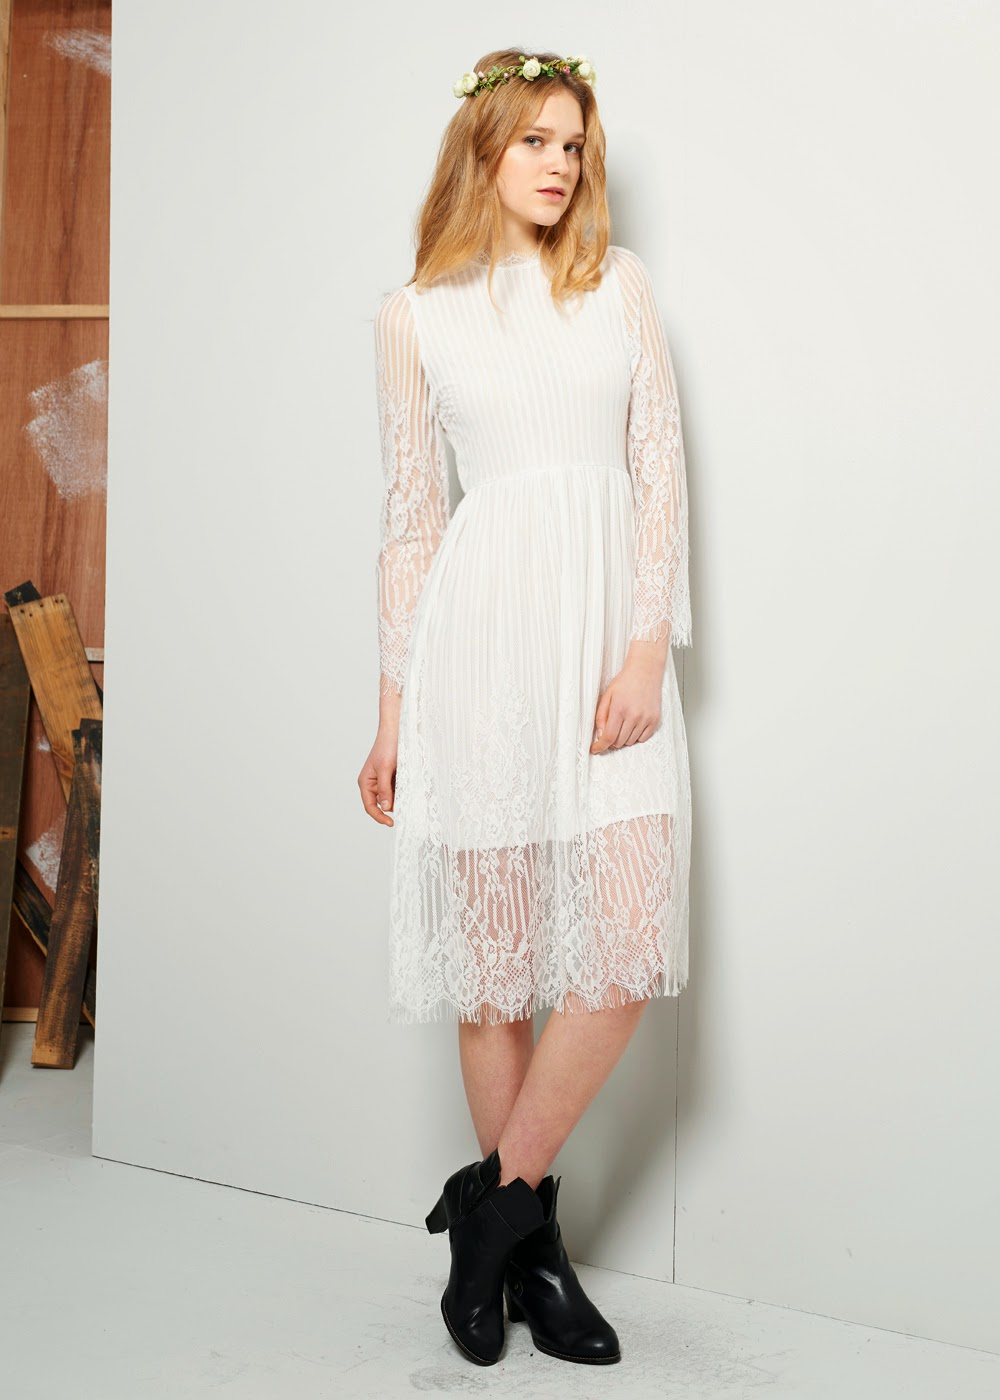 http://www.storets.com/shop/clothing/dresses/megan-lace-dress-white.html